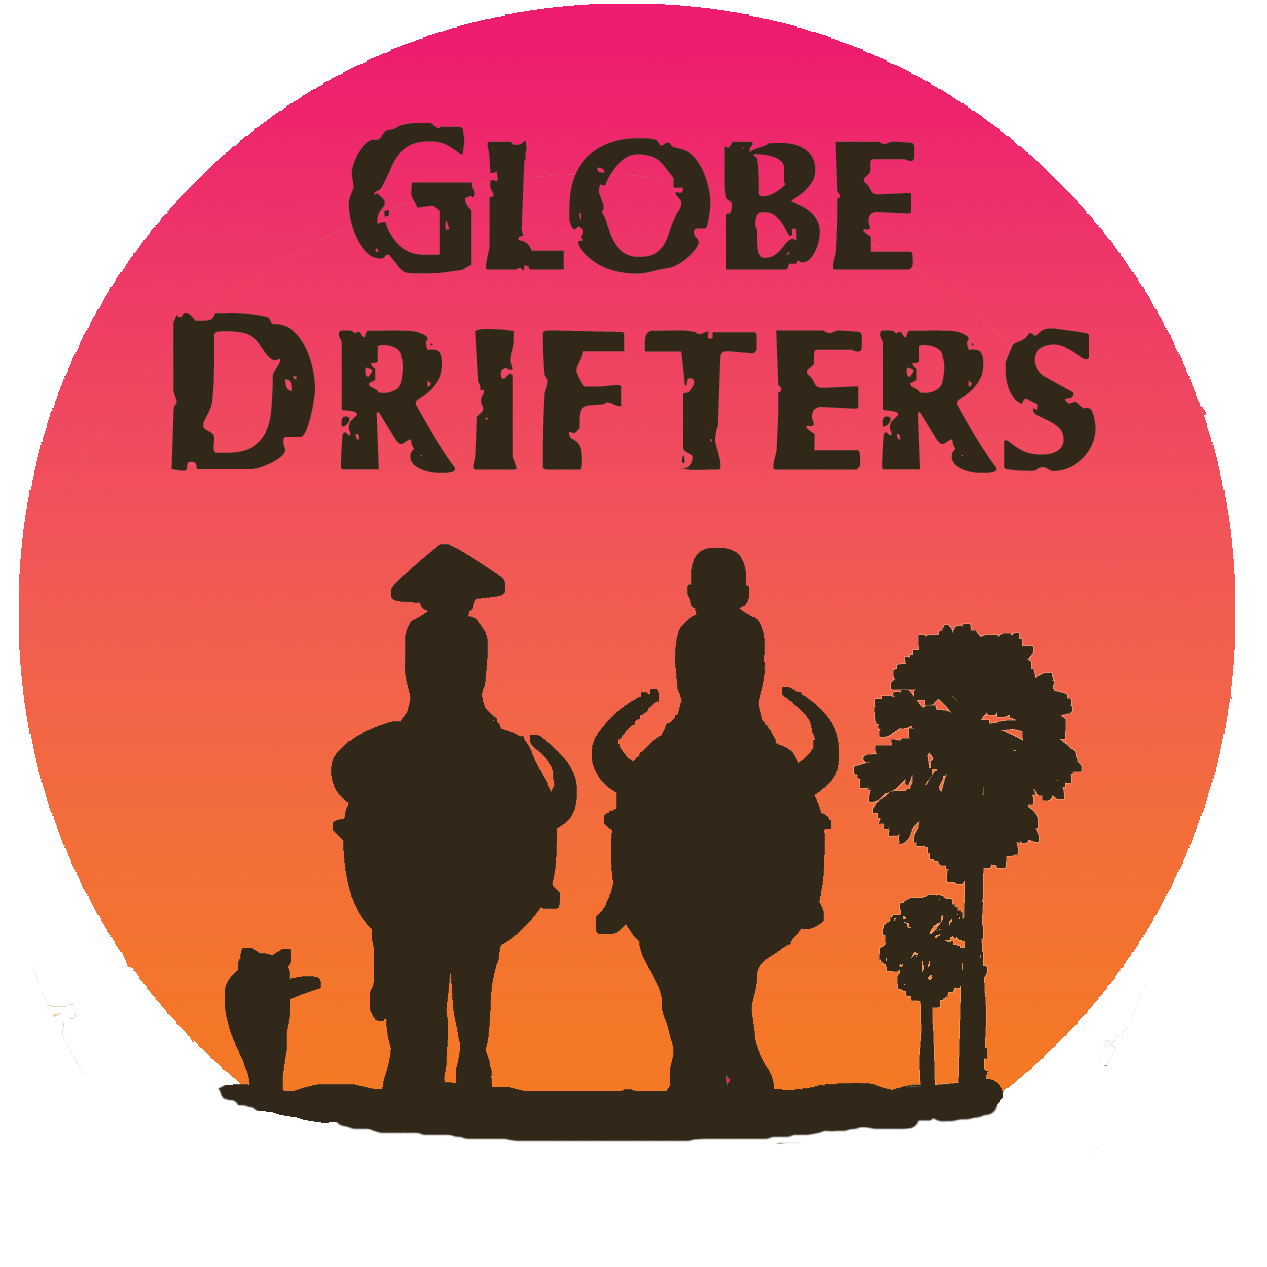 Lake clipart national park sign. Globe drifters on twitter